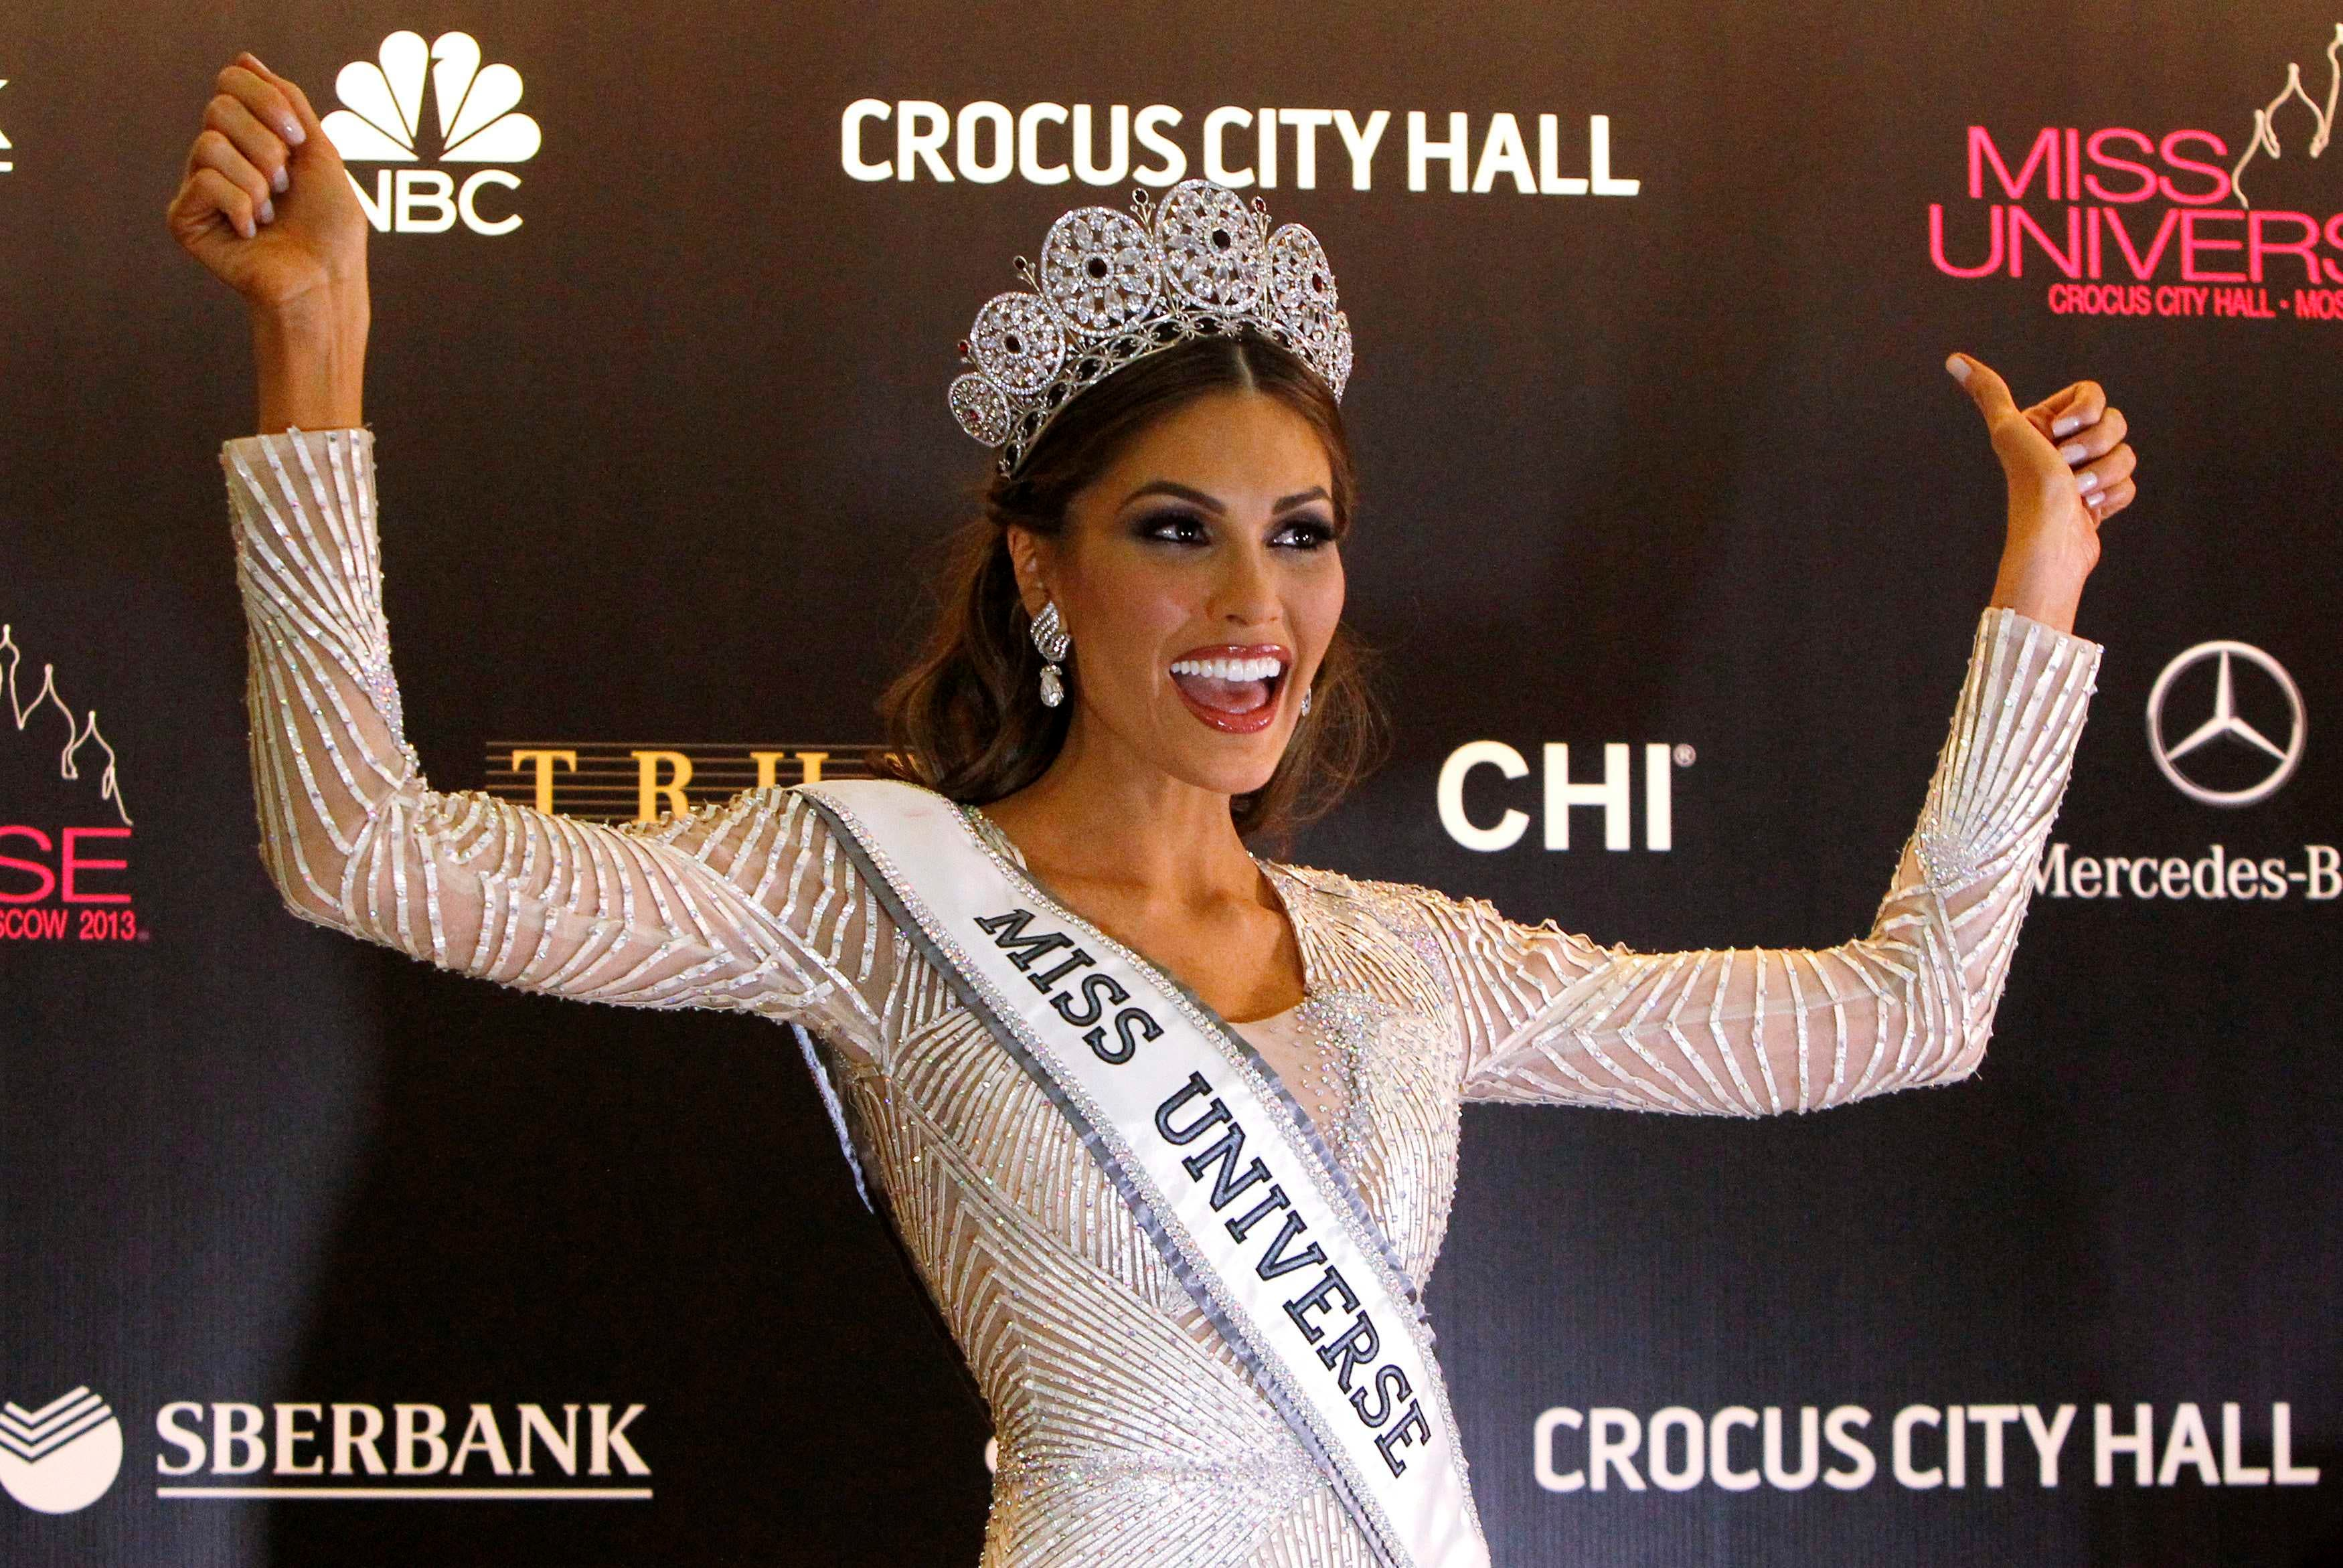 Miss Venezuela Gabriela Isler reacts as she is given the winner's sash after winning the Miss Universe pageant at the Crocus City Hall in Moscow Nov. 9, 2013. (Reuters)